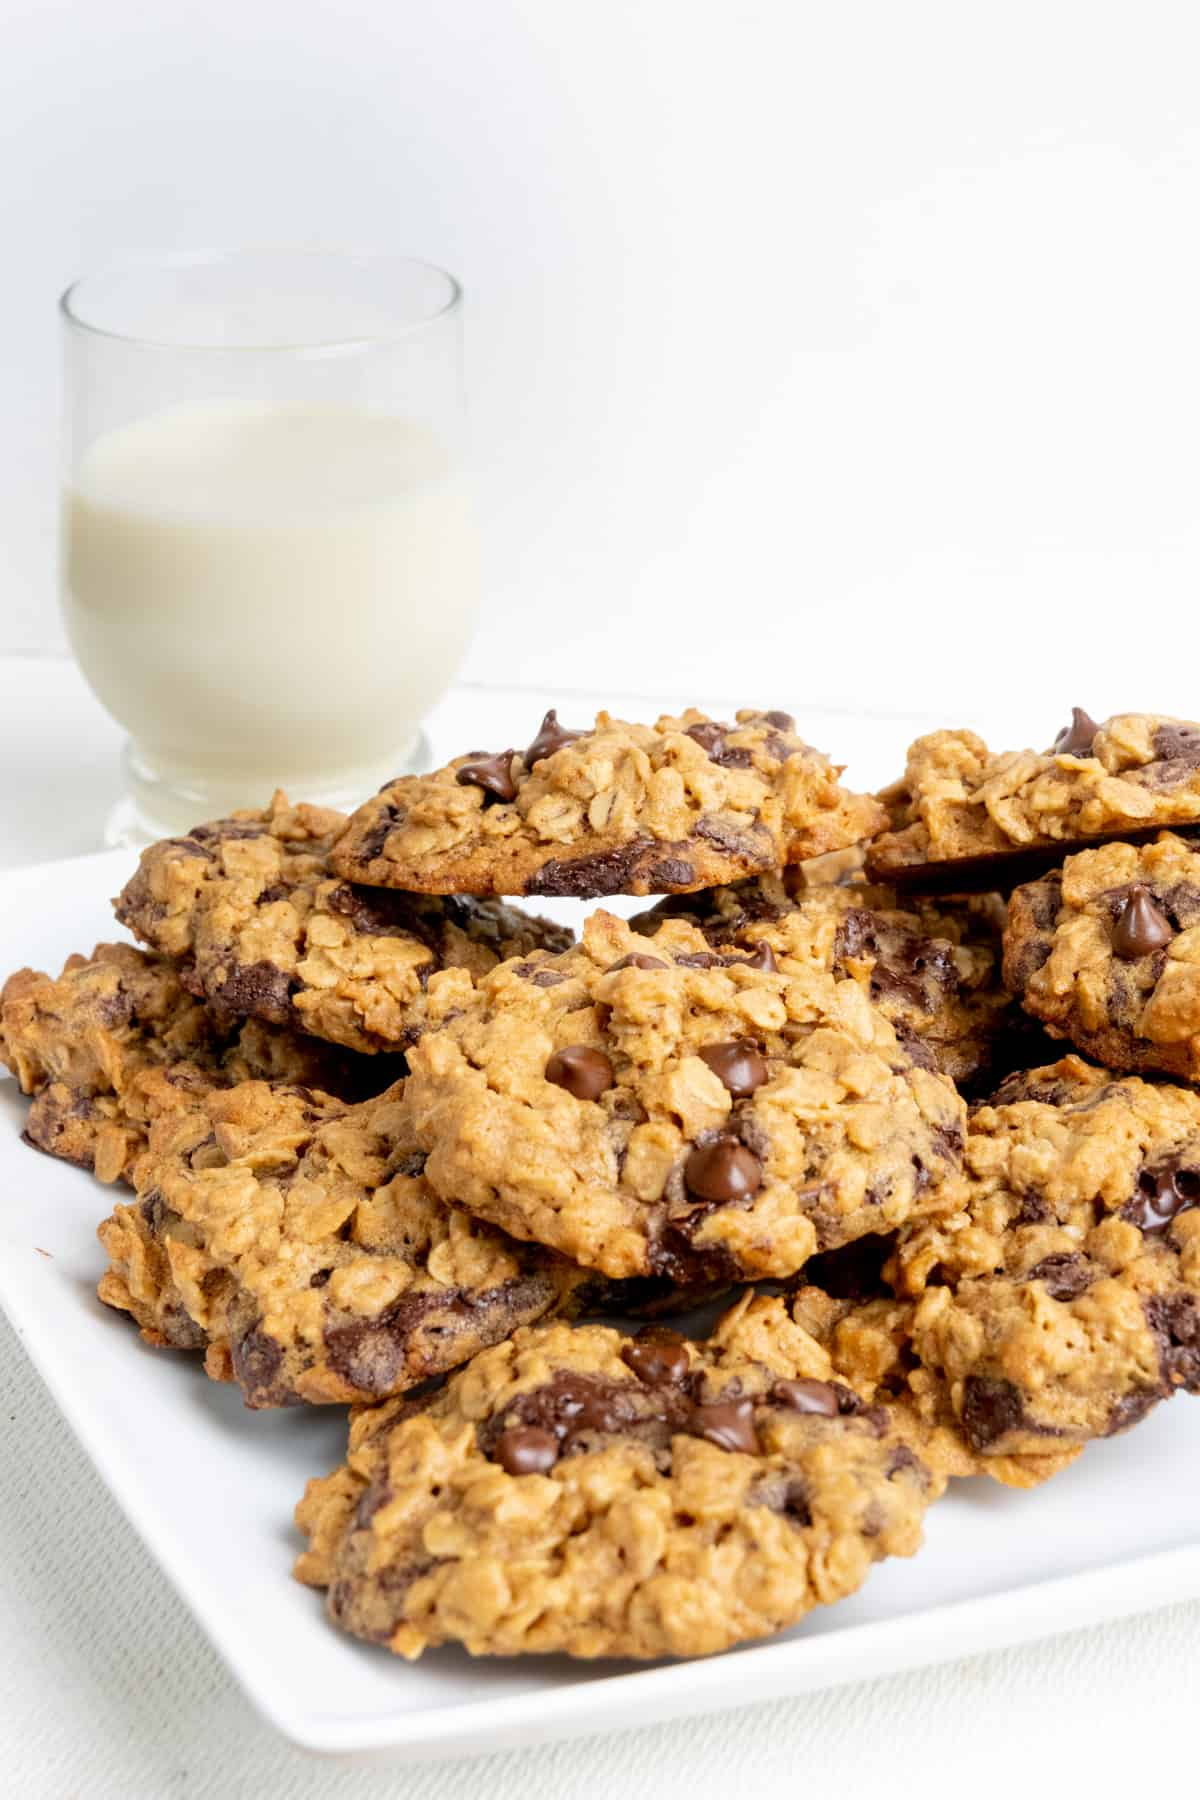 A pile of cookies on a plate, and in the background a glass of oat milk.